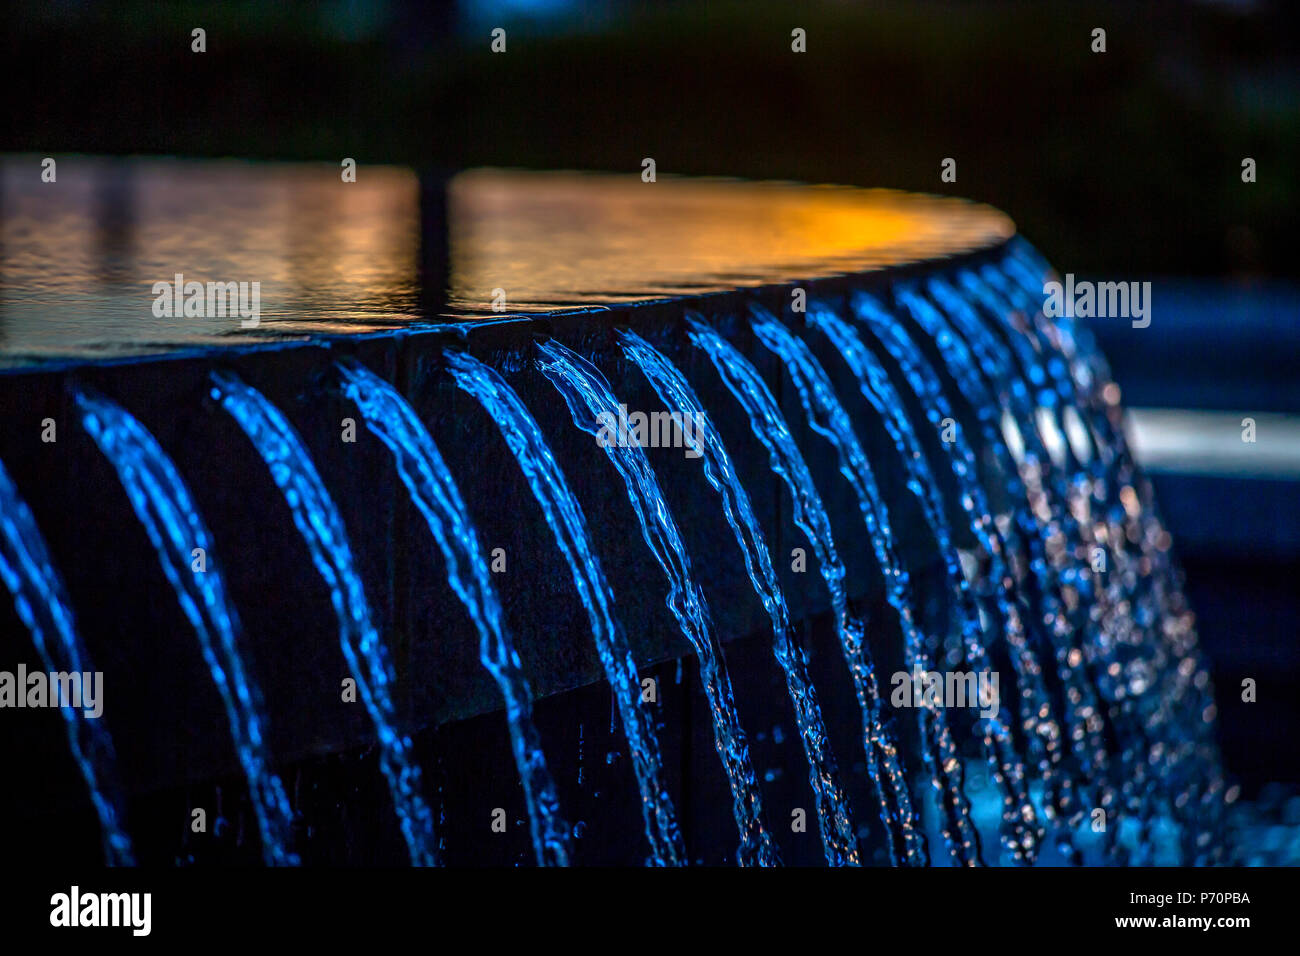 Water fountain detail shot at twilight - Stock Image